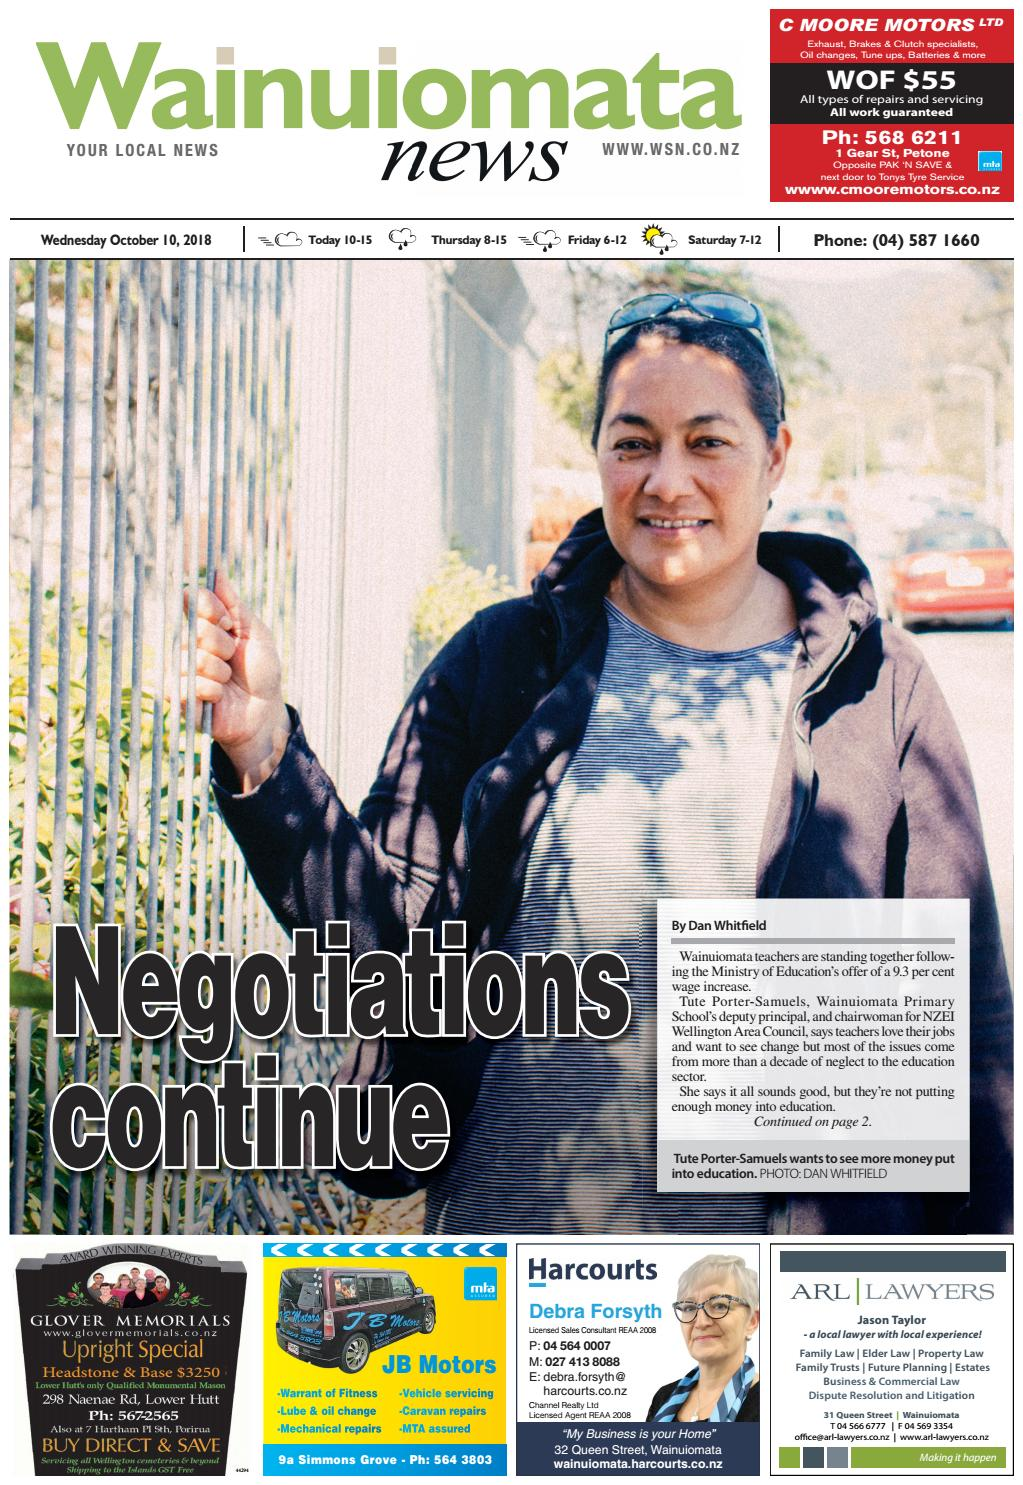 2f8cd5aeb795 Wainuiomata News 10-10-18 by Local Newspapers - issuu